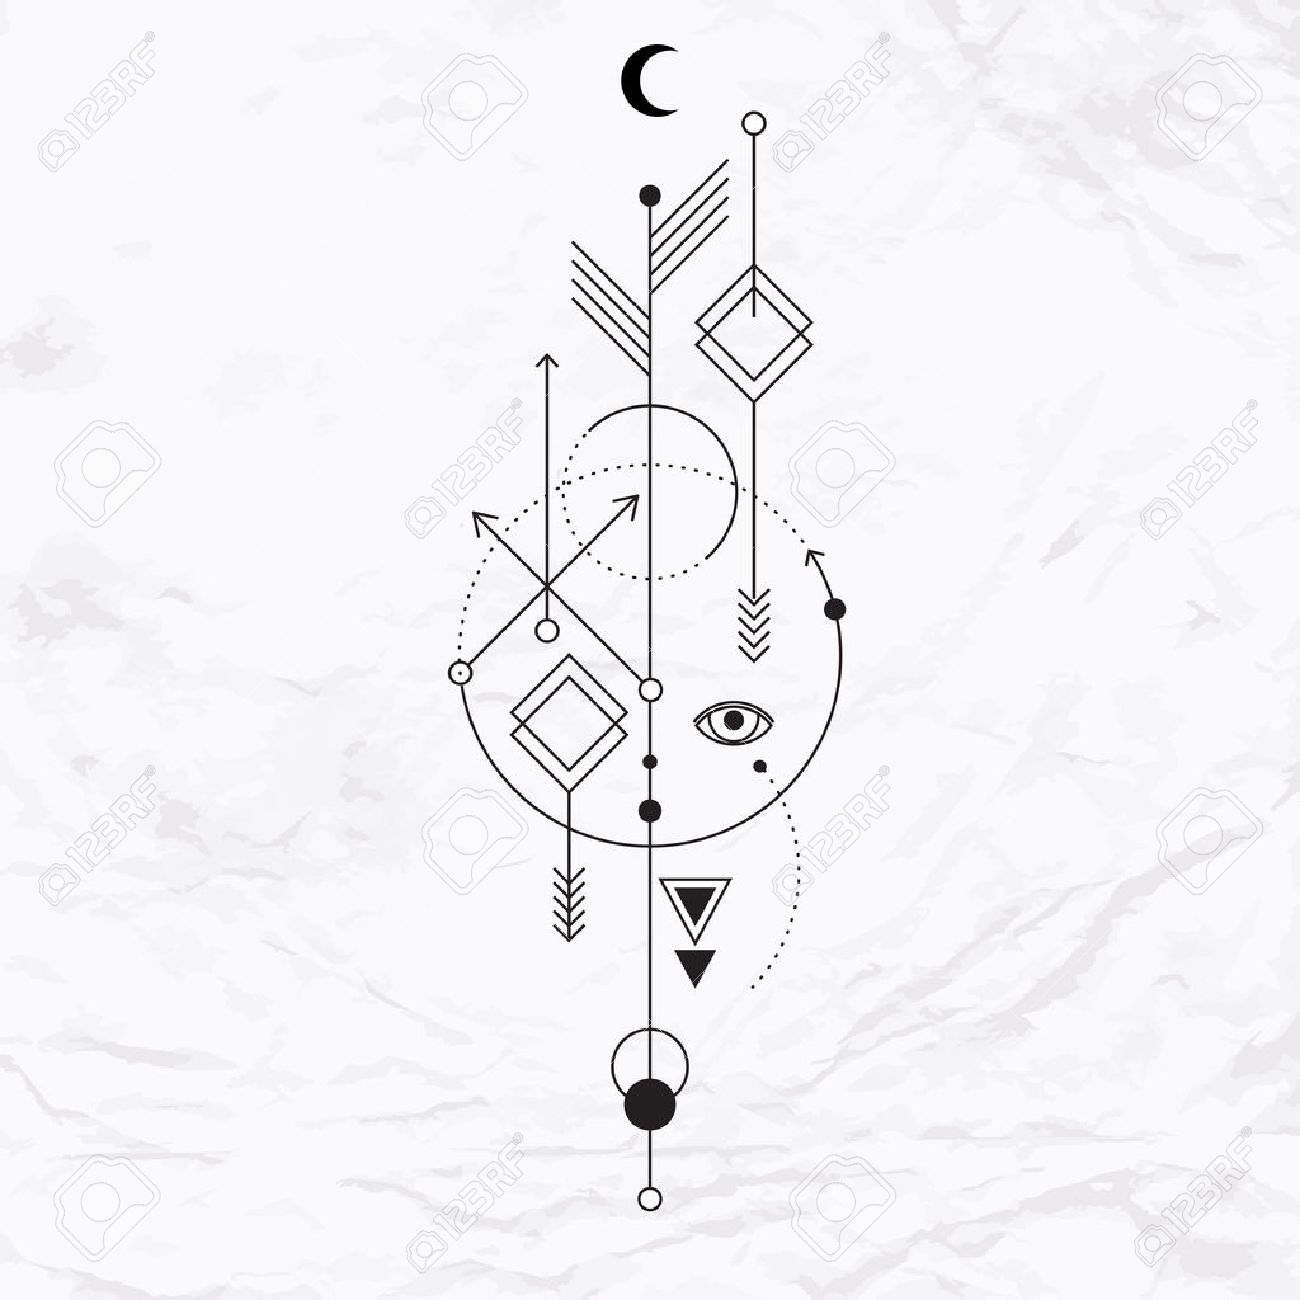 Vector Geometric Alchemy Symbol With Eye Moon Shapes Abstract